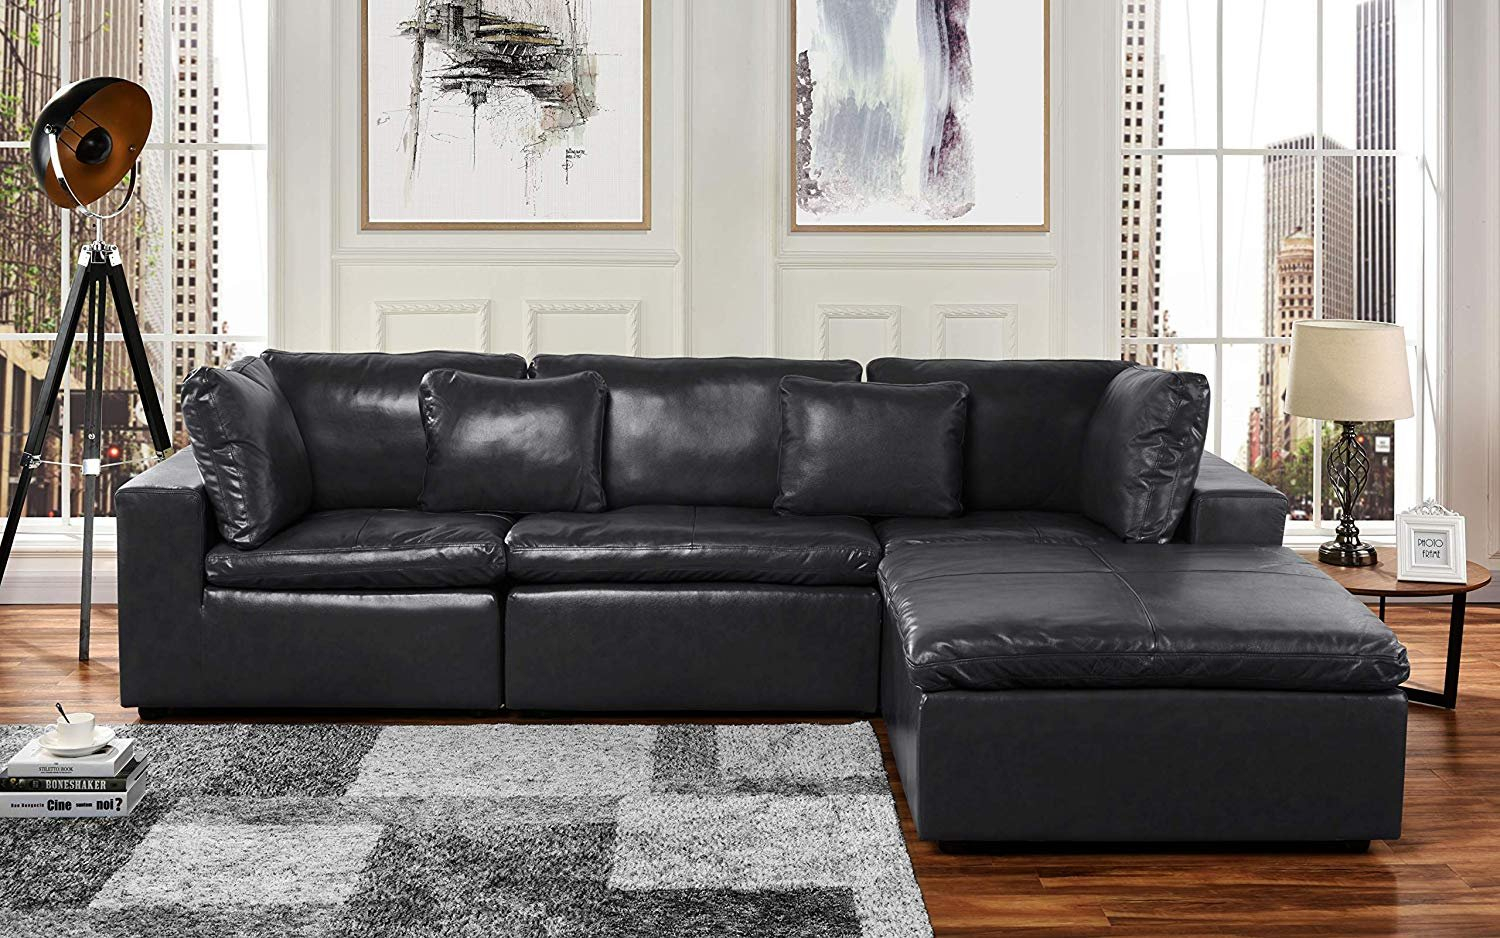 Large Leather Sectional Sofa, L Shape Couch With Wide In Sectional Sofas (View 8 of 15)